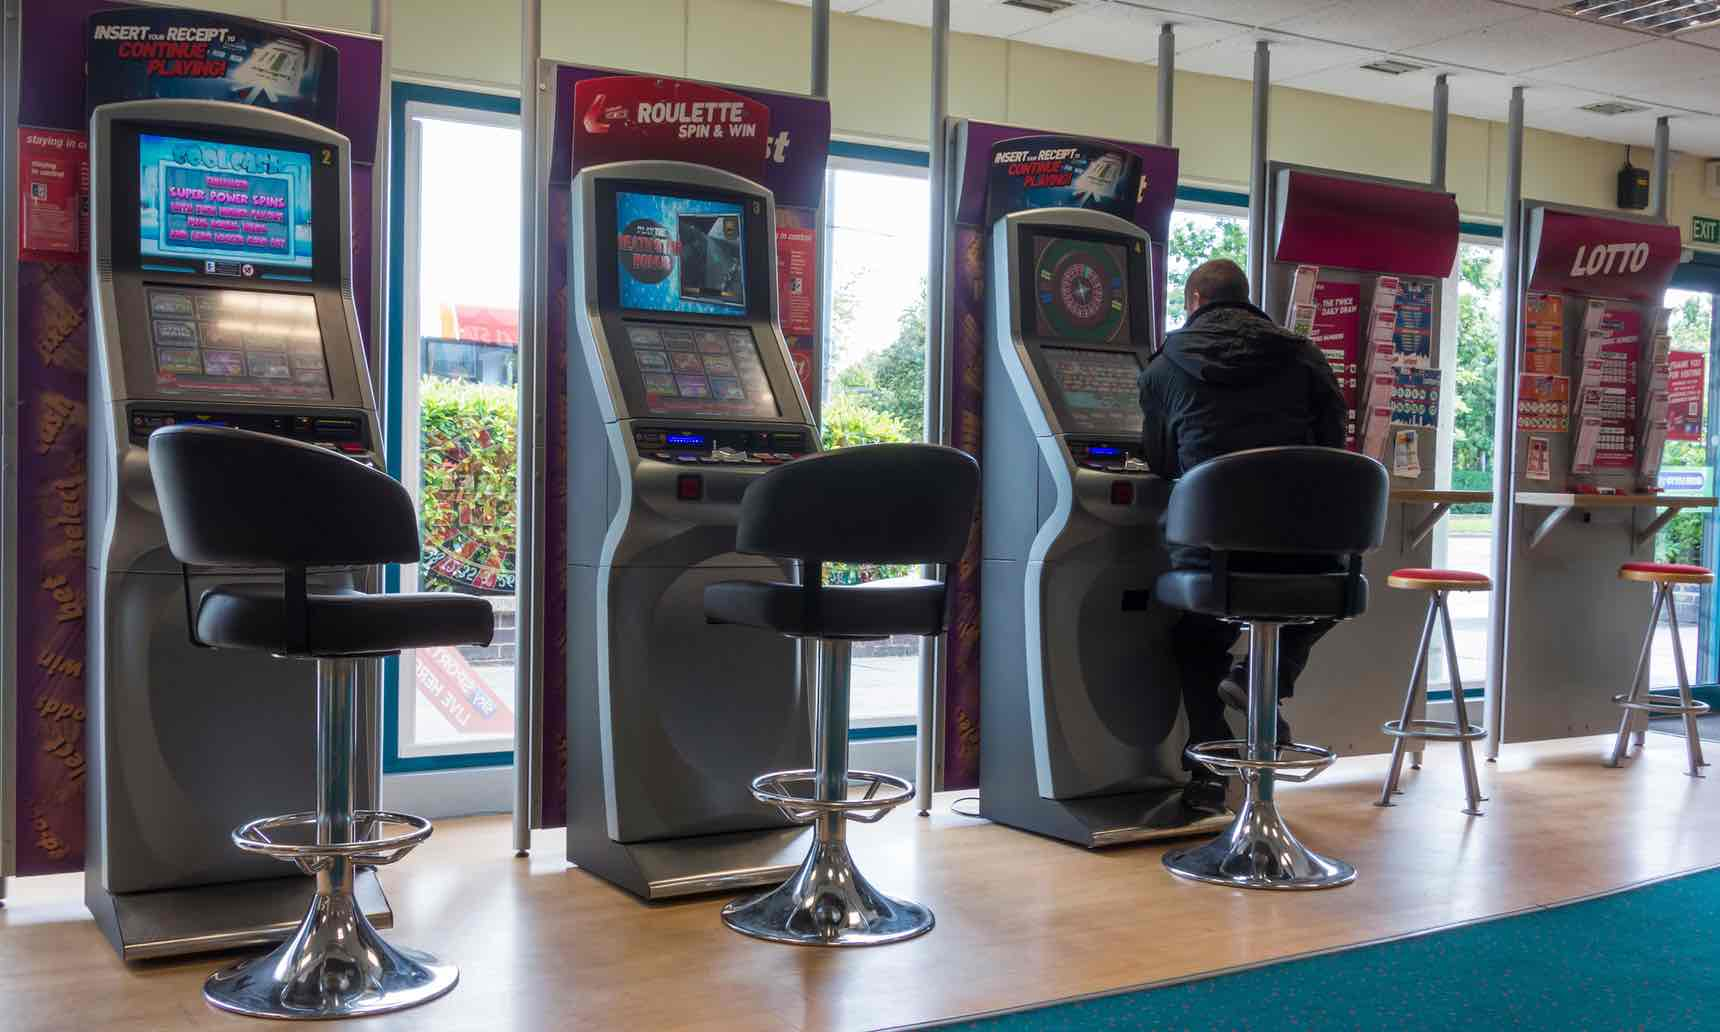 Roulette machines in a bookmakers